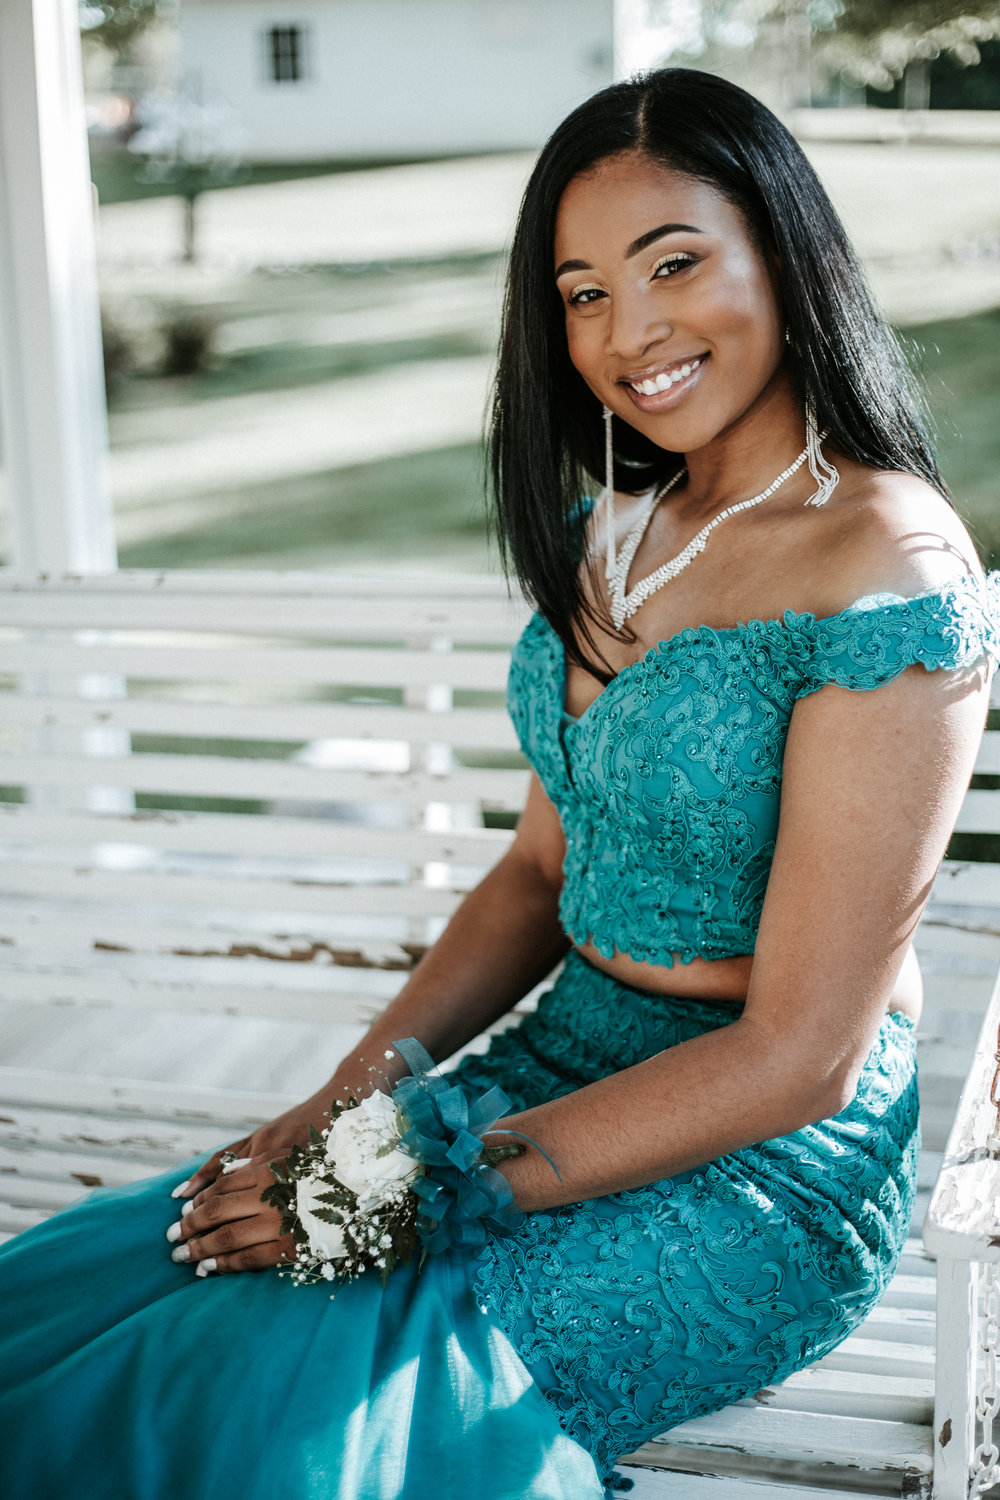 charlotte-senior-portrait-photographer-high-school-prom-9963.jpg